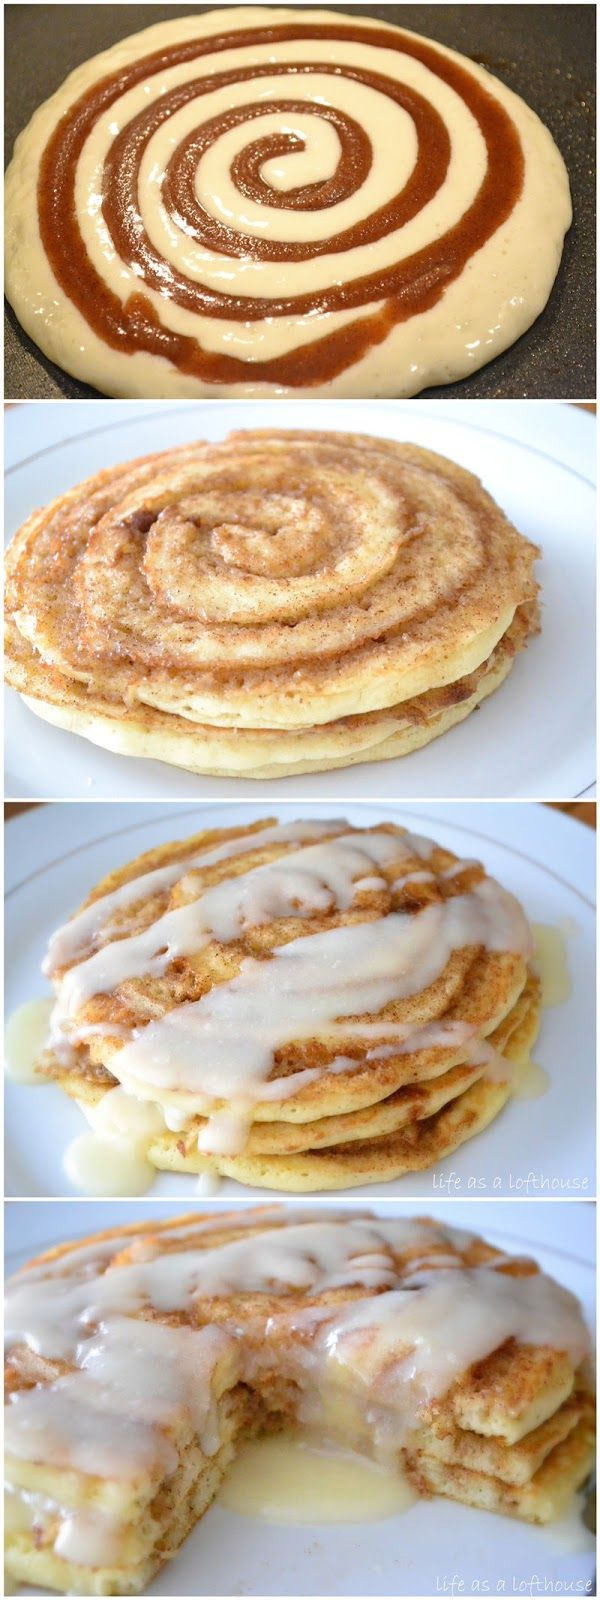 toptenlook: Cinnamon Roll Pancakes OMG, yum!! And such simple everyday ingredients!! More